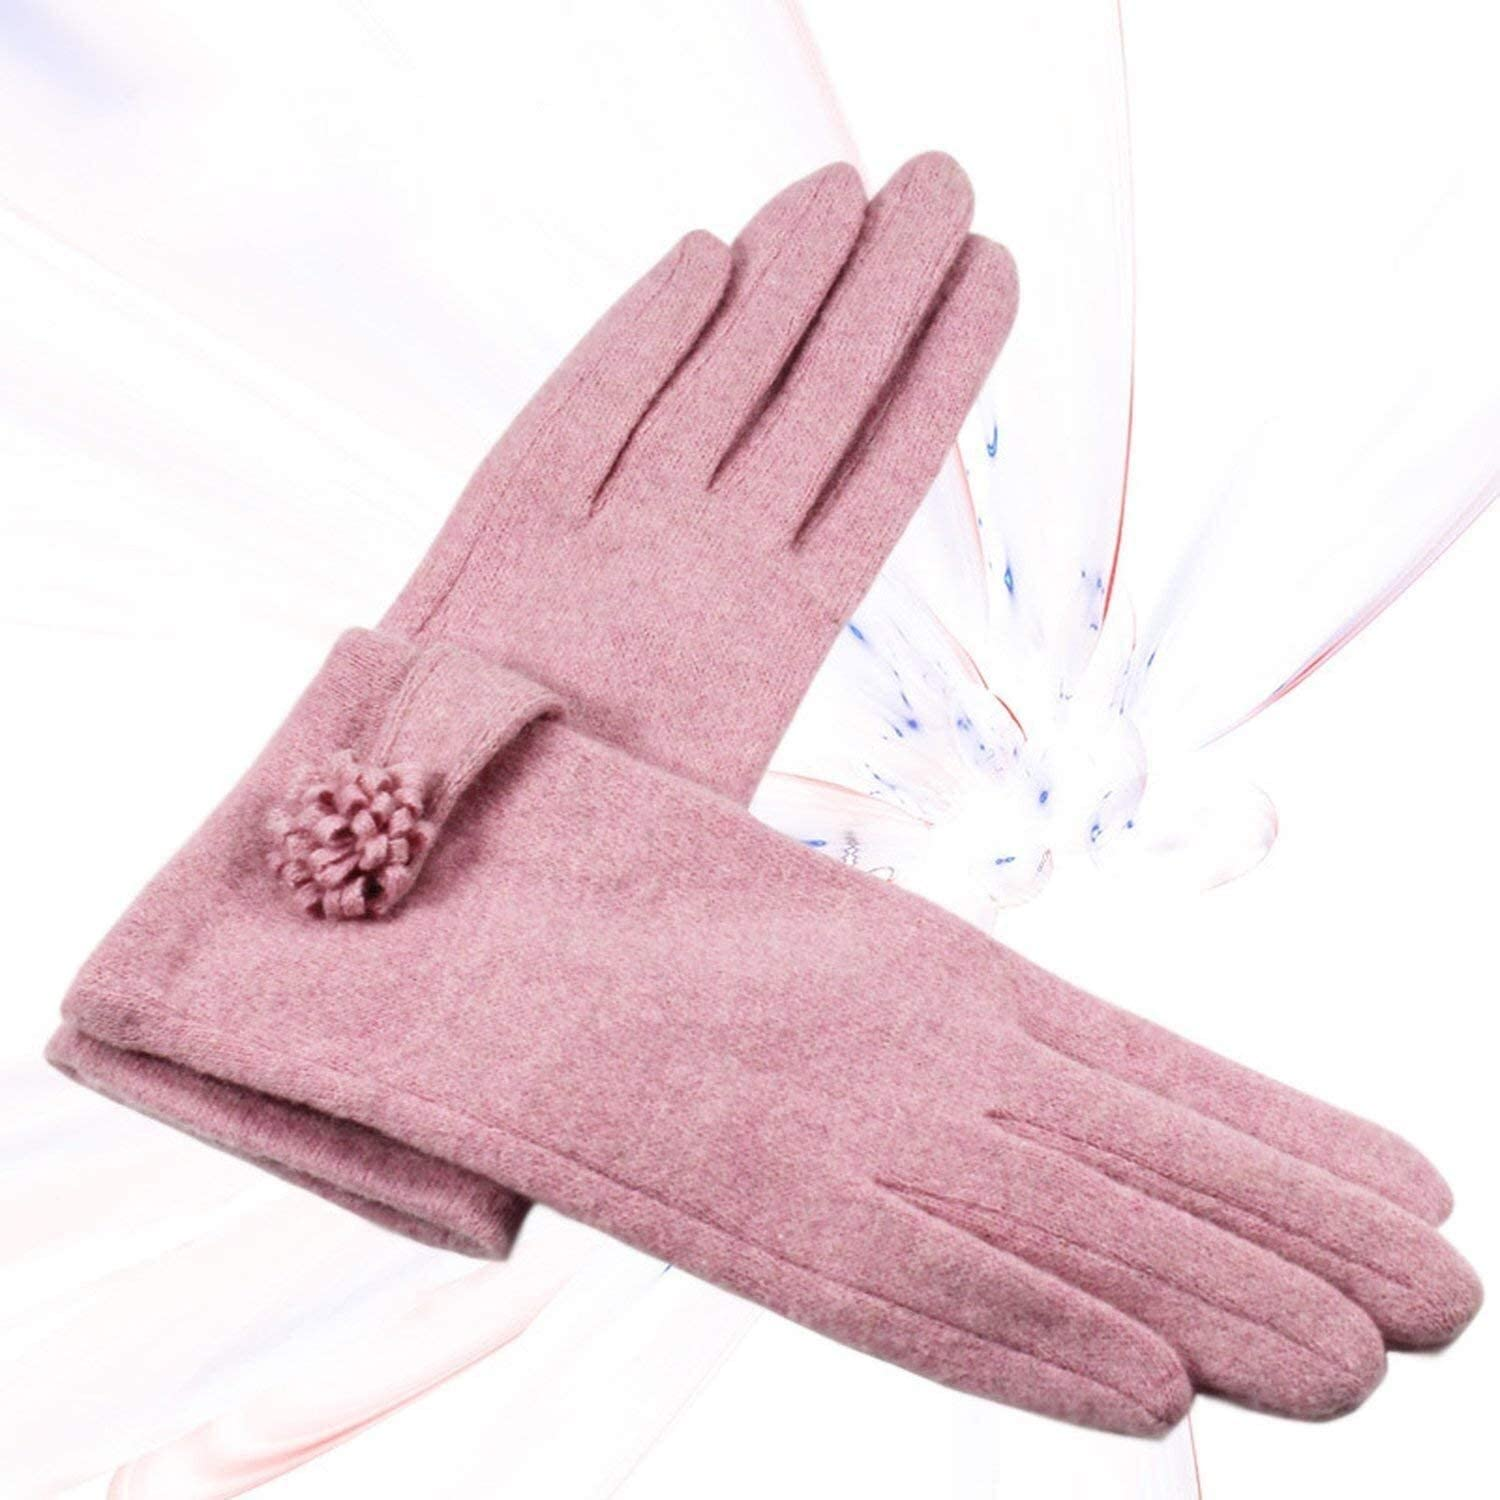 Samantha Warm Gloves Elegant Female Wool Knit Touch Screen Gloves Winter Women Keep Warm Cashmere Full Finger Leather Bow Dotted Gloves (Color : B Gray, Size : Oneszie)